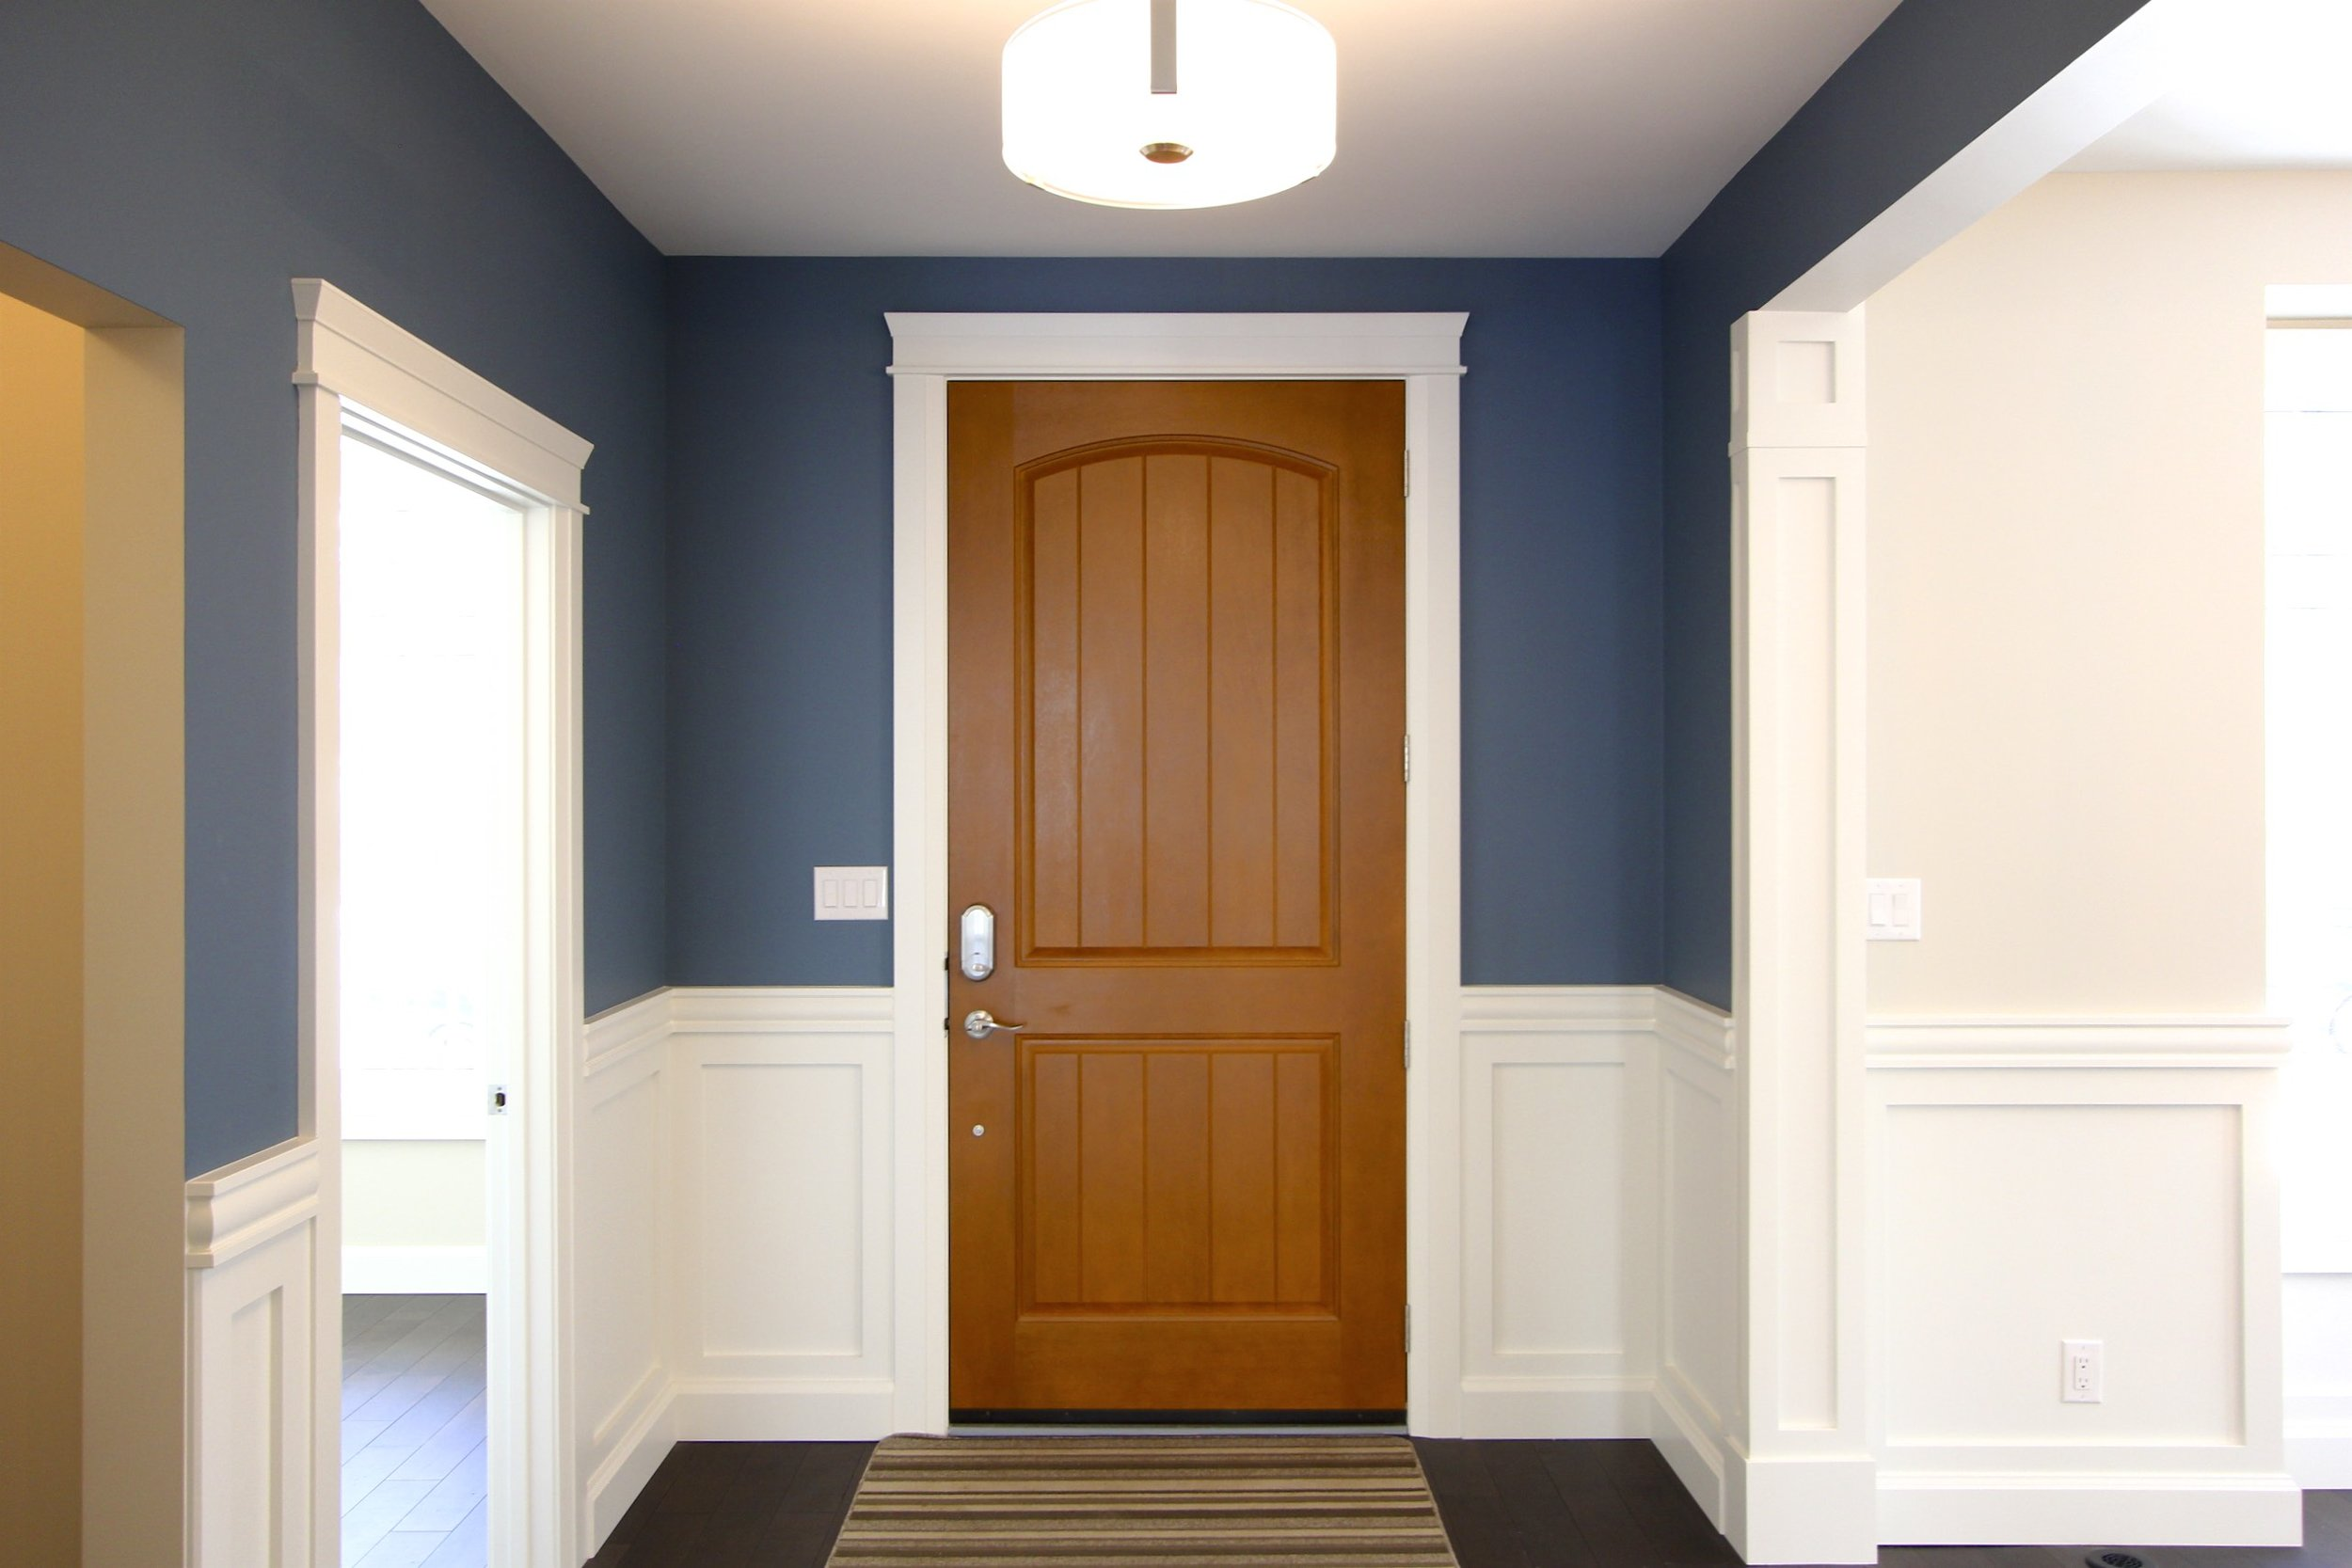 Metric Design Centre, Interior Design, Saskatoon, Residential Design, New Home Build, Custom Millwork, Transitional Design, Blue Feature Wall, Wood Front, Door, Front Entry, White Molding and Trim, Hardwood Flooring, Lighting.jpg